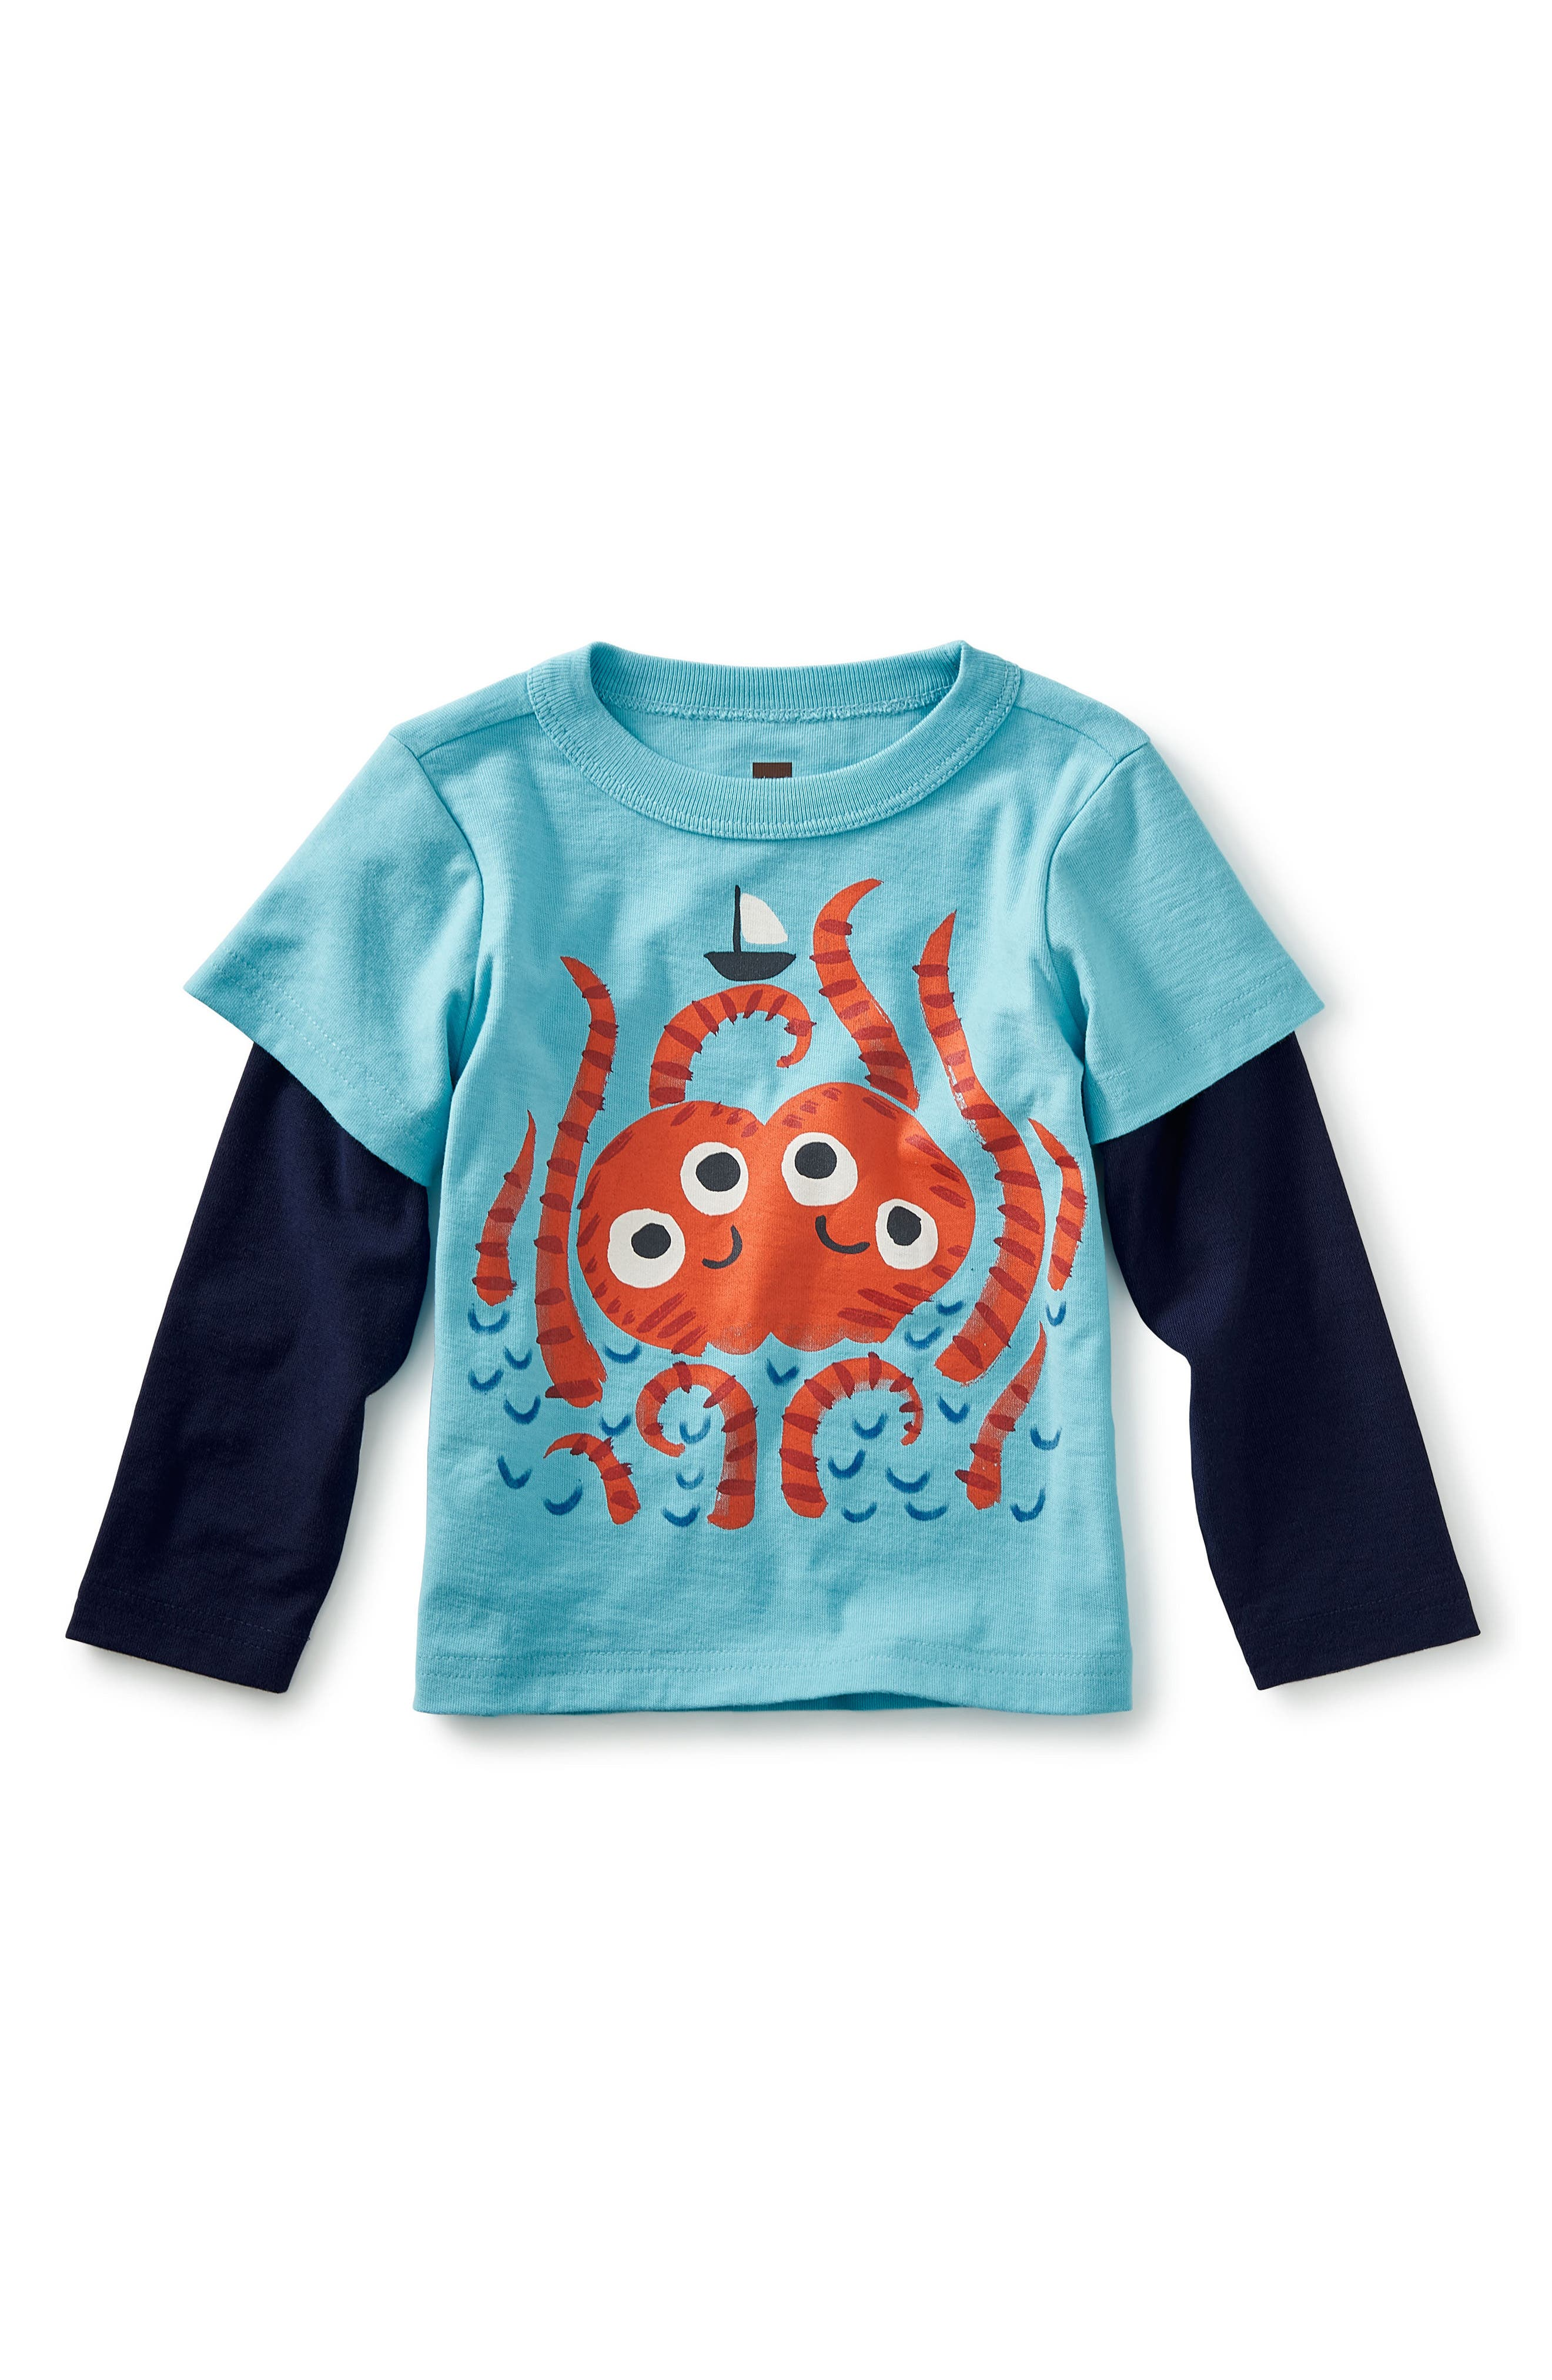 Sea Monster Graphic T-Shirt,                             Main thumbnail 1, color,                             400